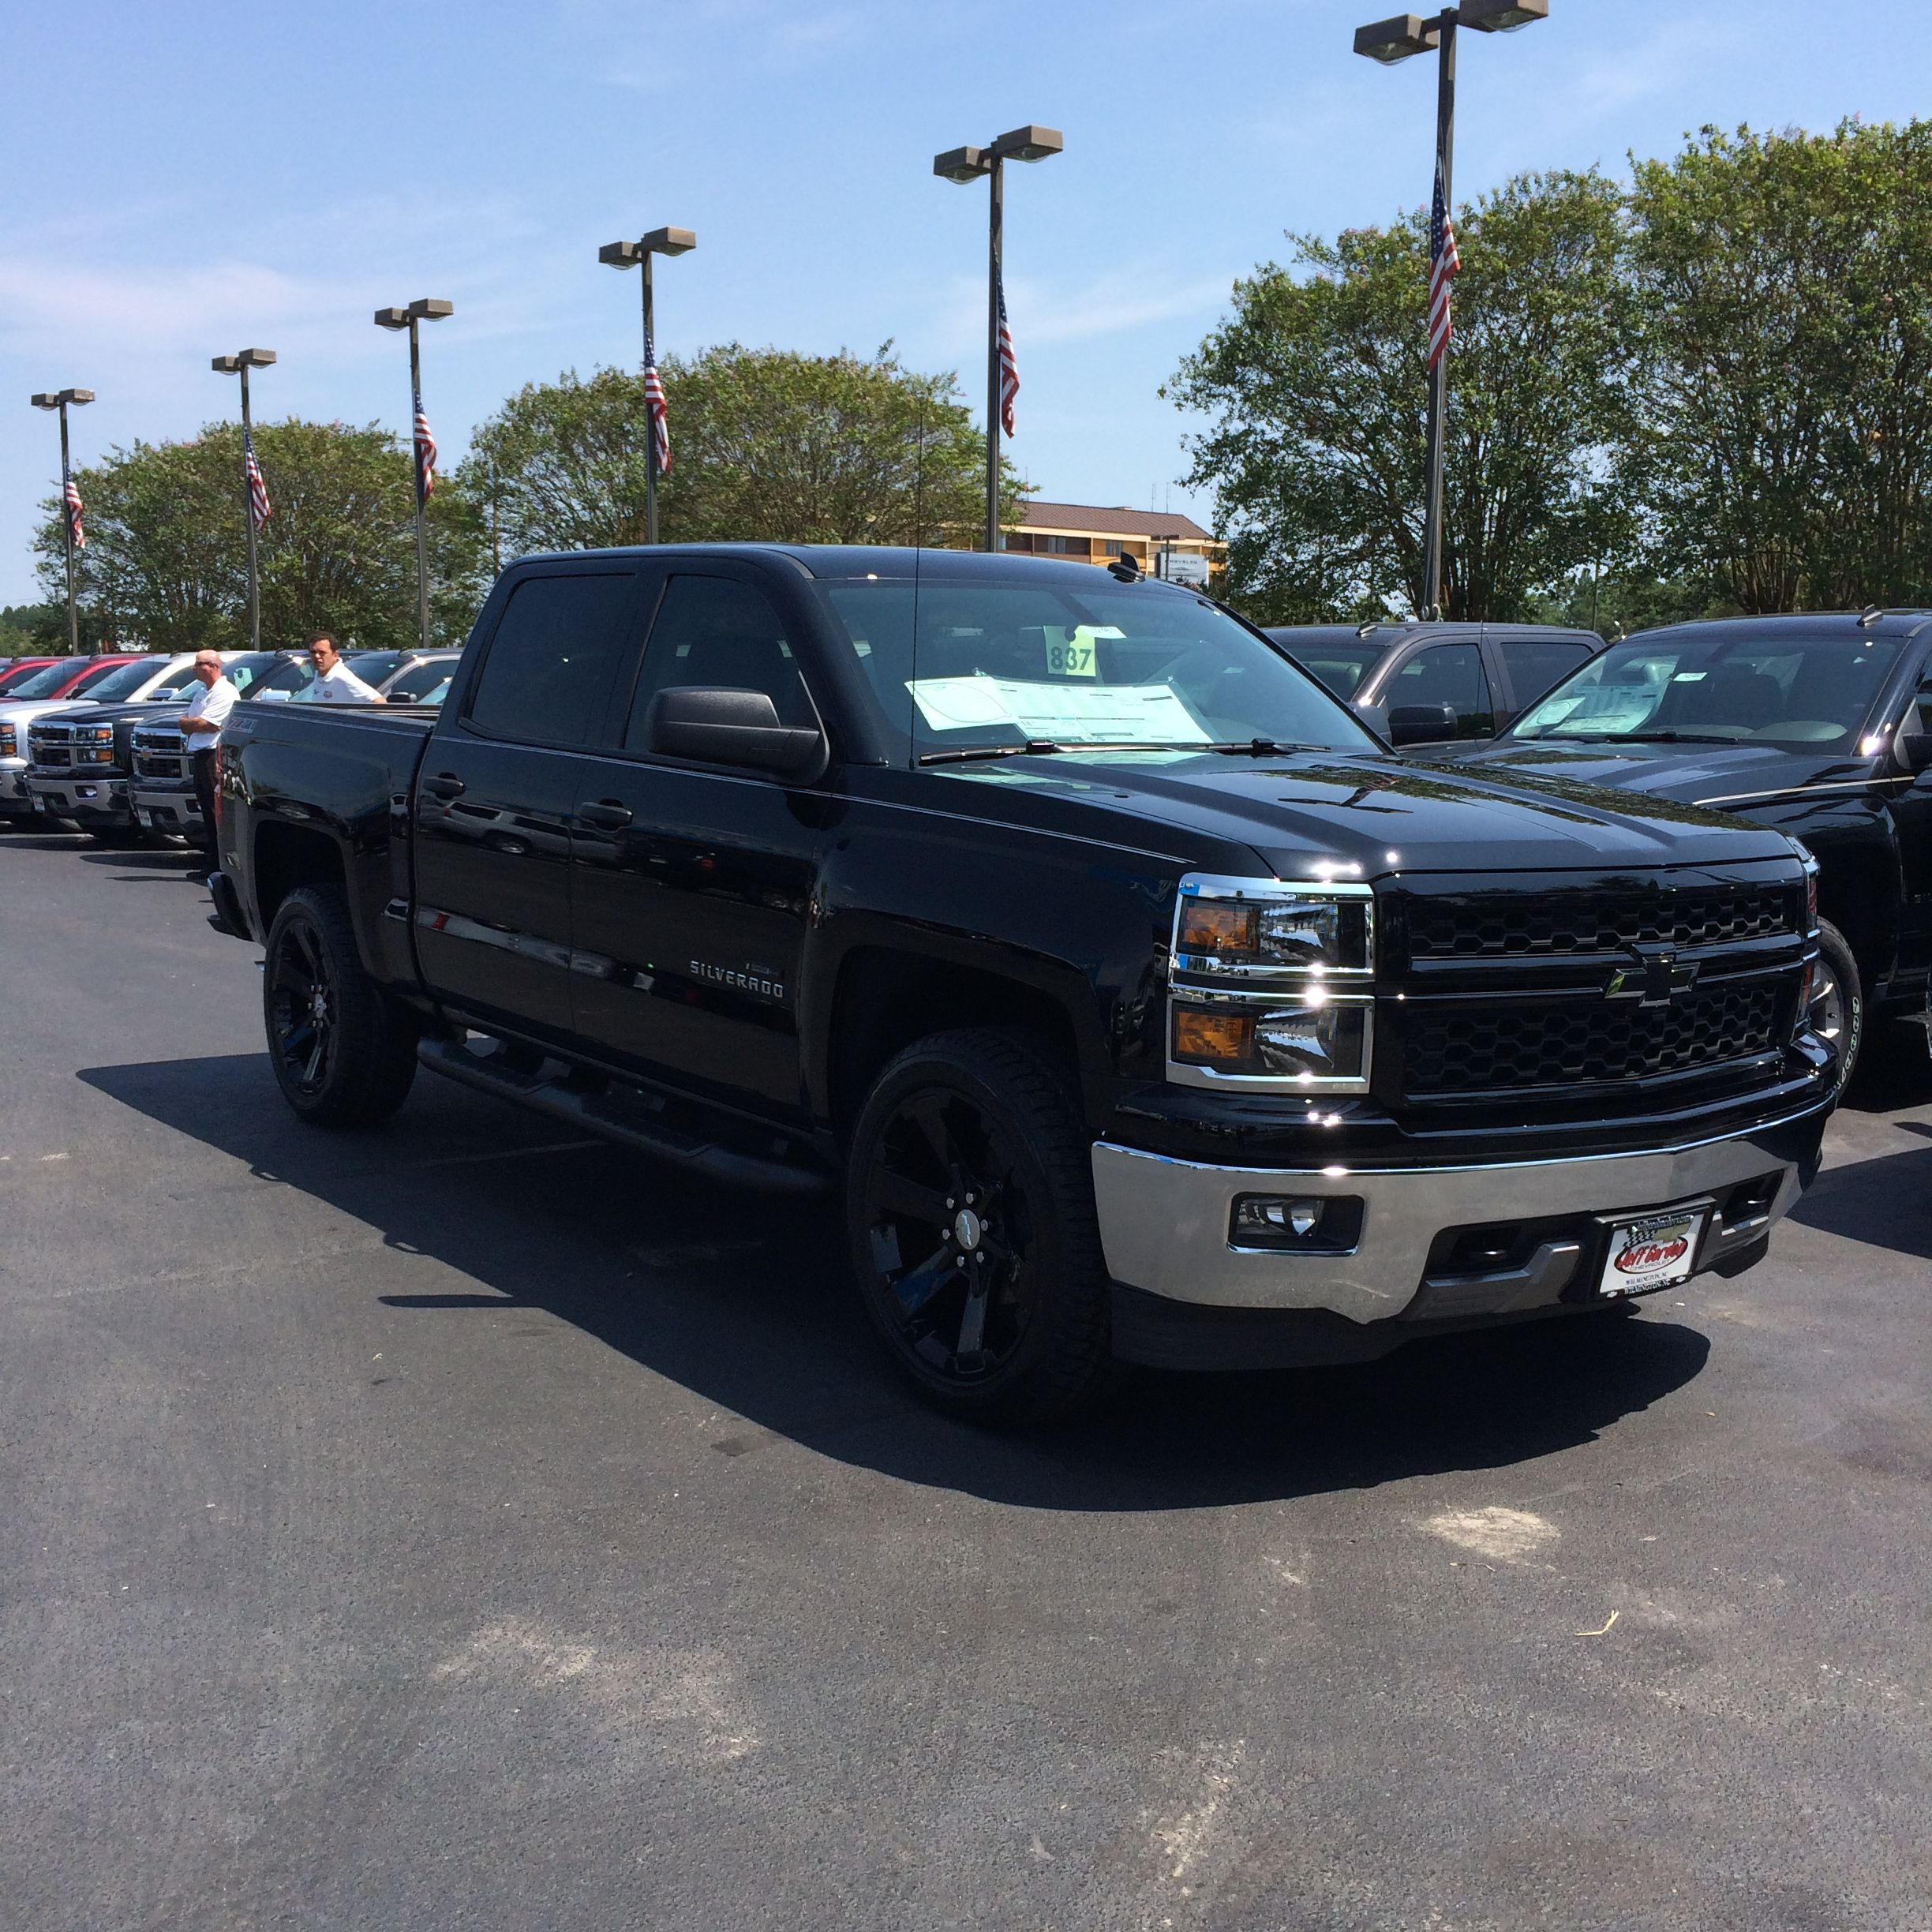 h model now silverado zero chevrolet emission chevy news available